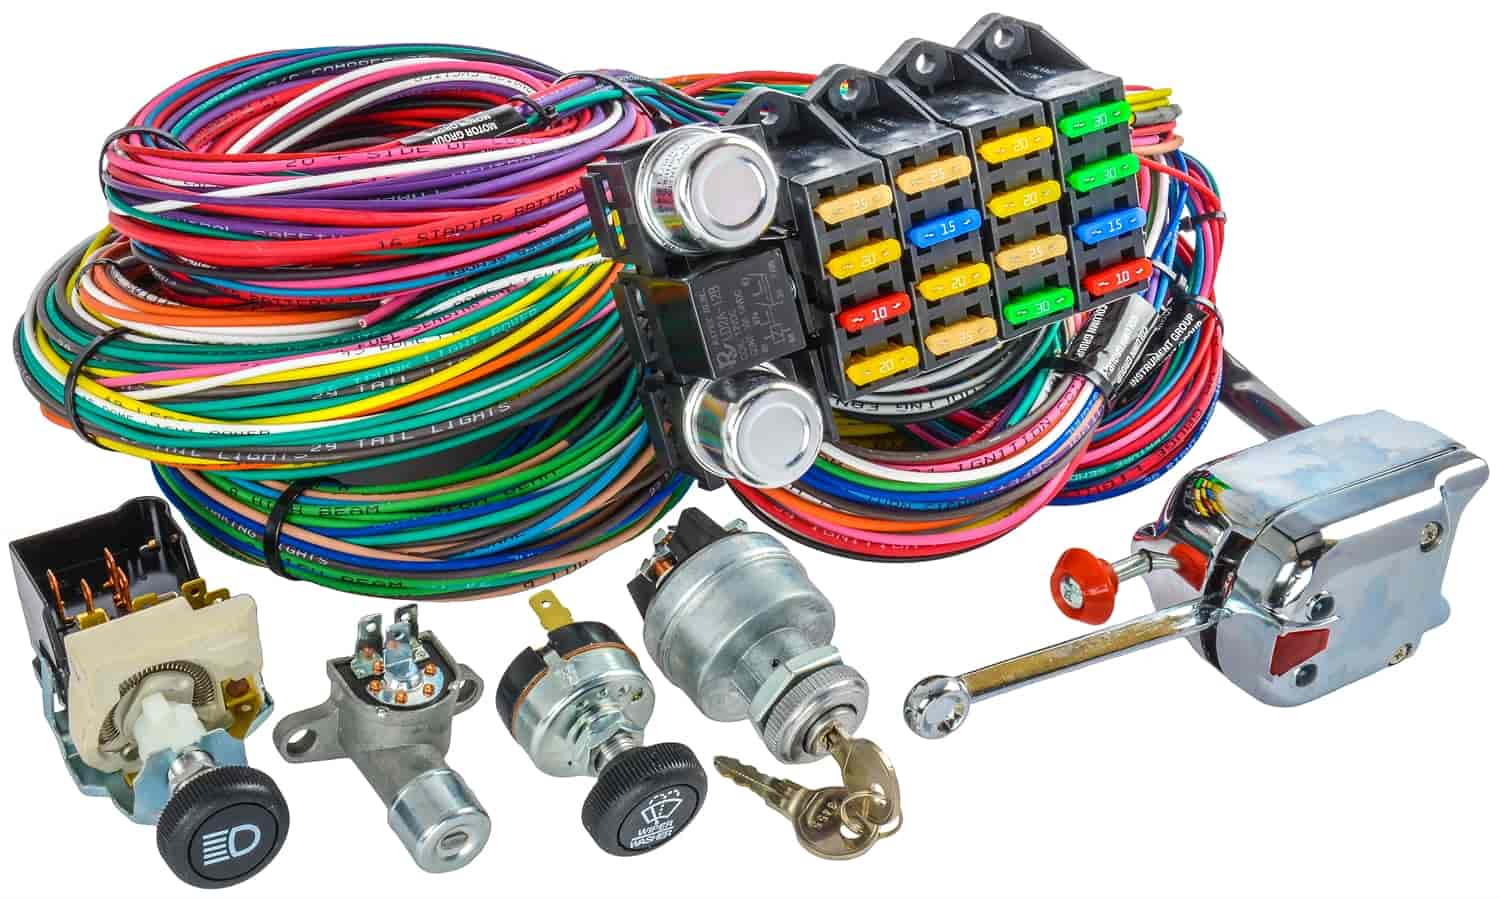 Universal Wiring Harness For Cars on universal car air filter, universal car radio, universal car remote control, universal car seat, universal car water pump, universal car door handle, universal car gas tank,